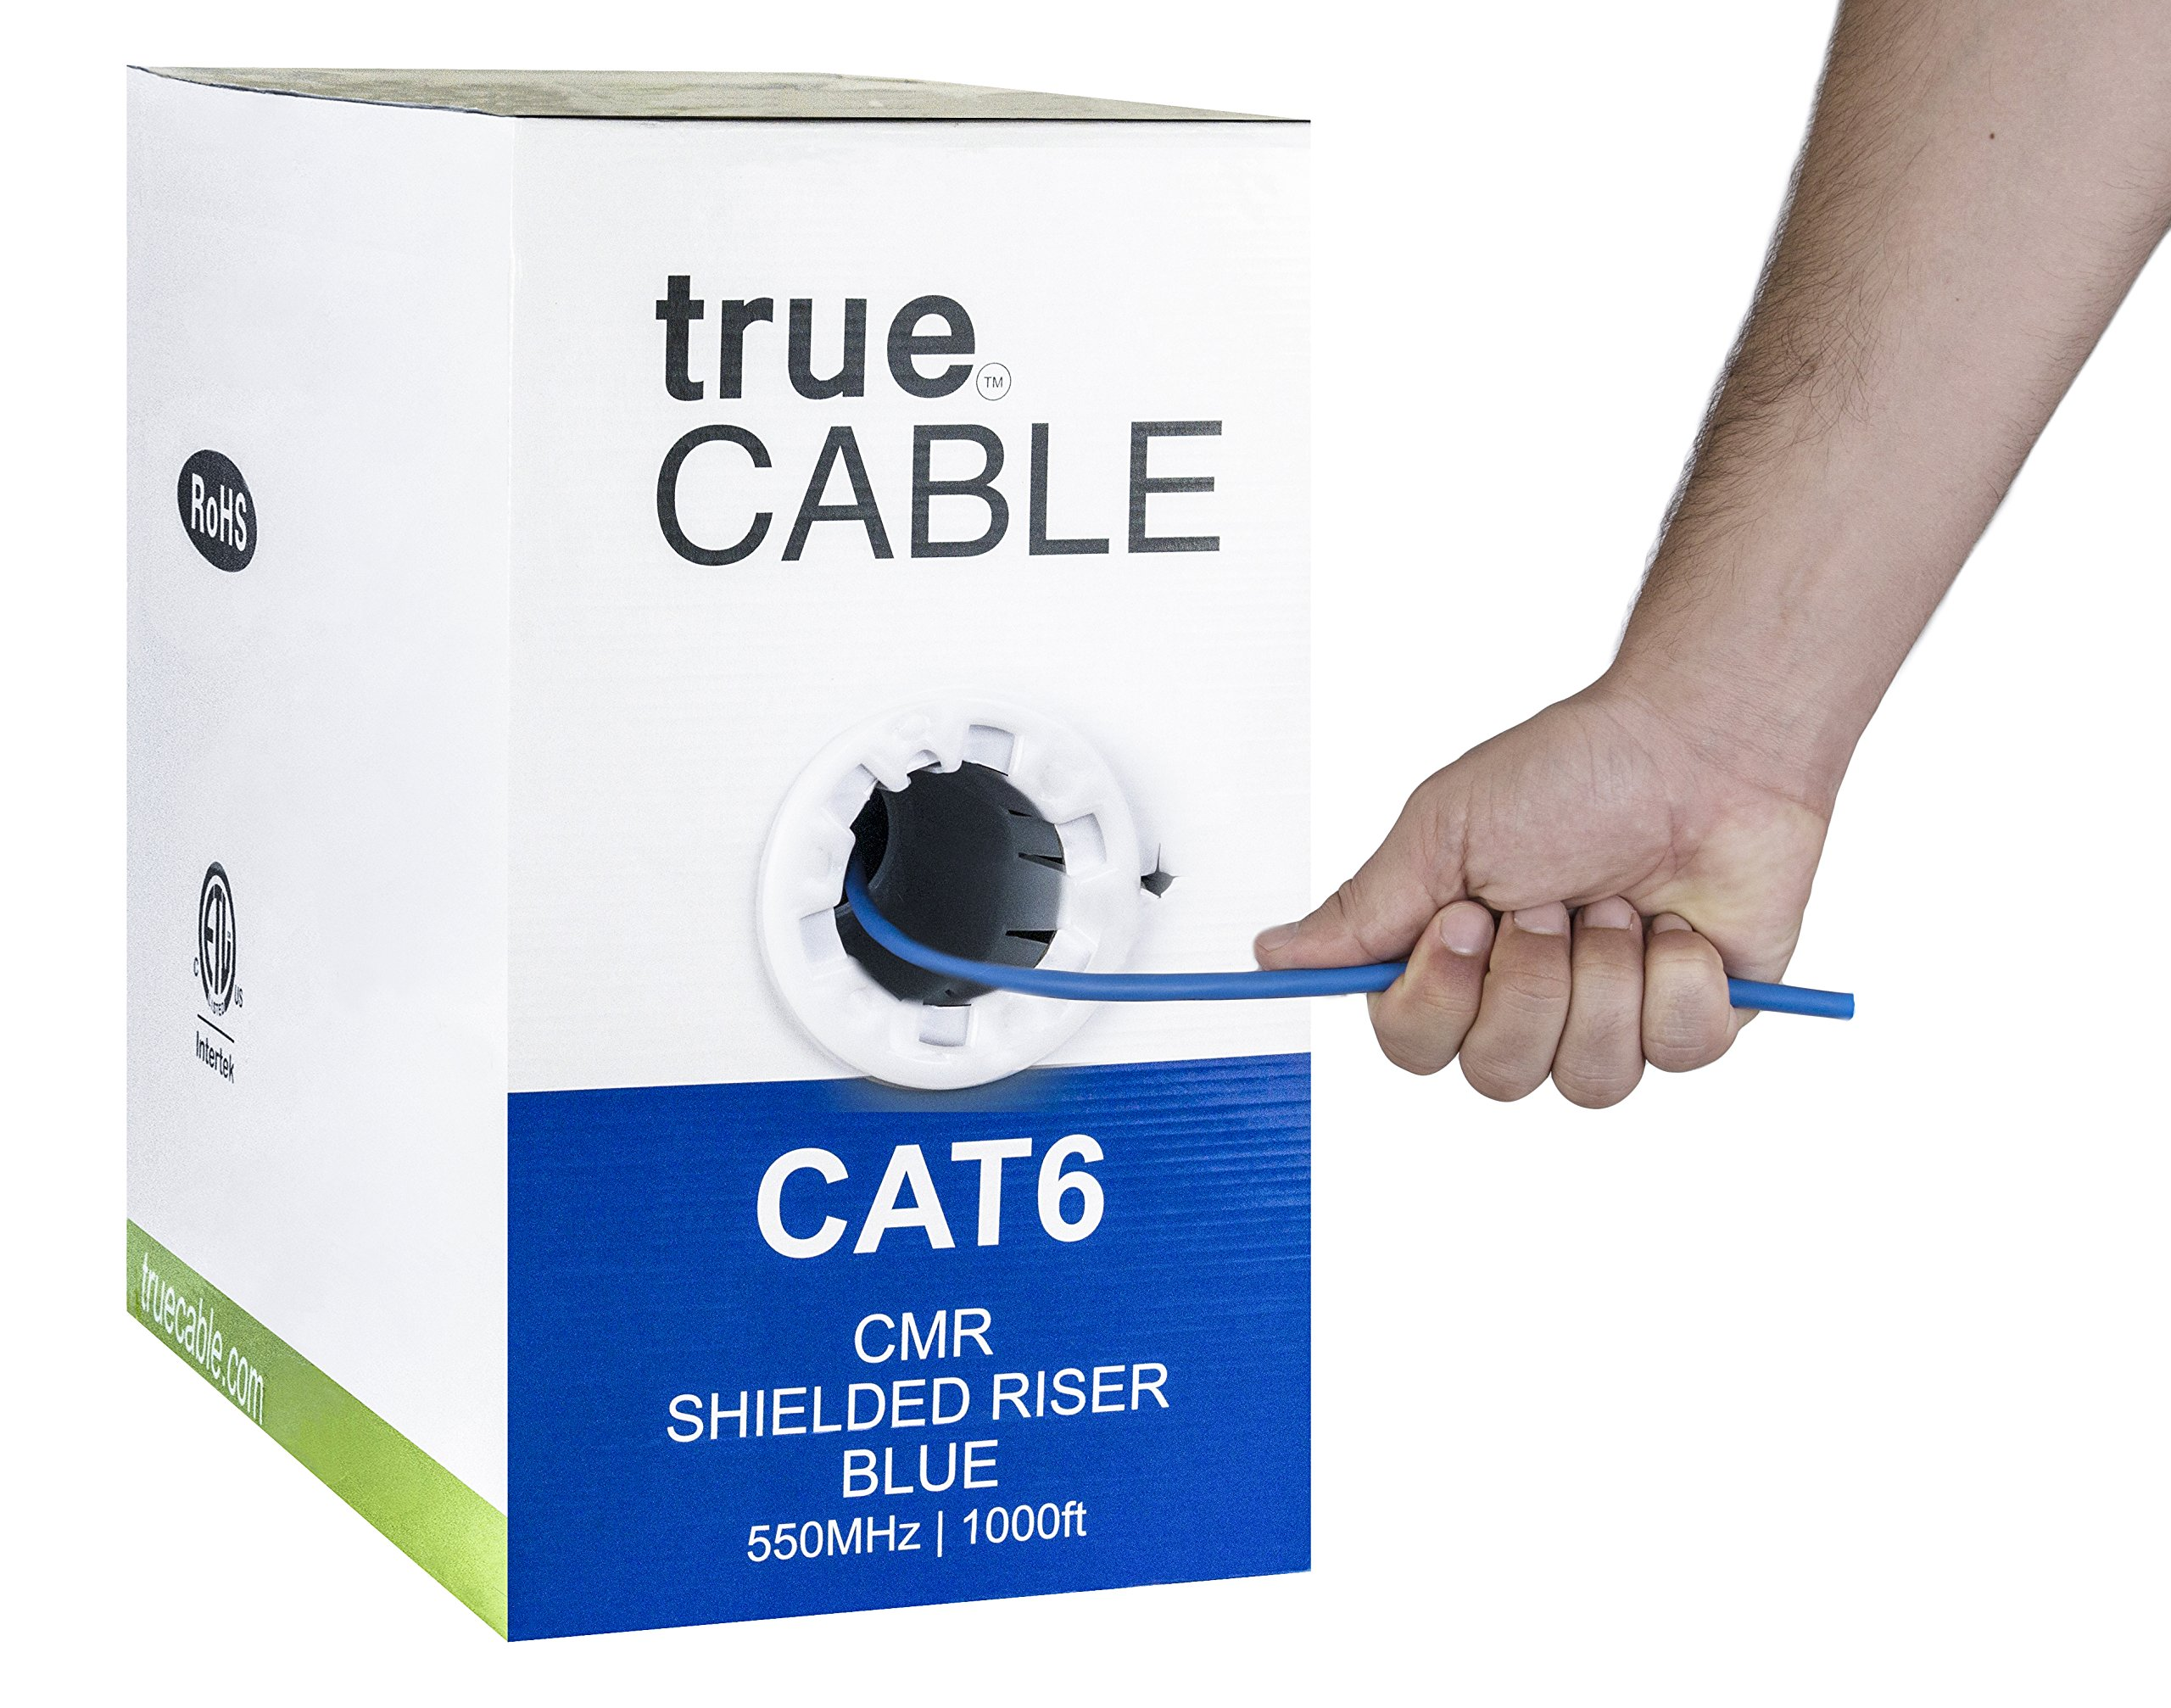 Cat6 Shielded Riser (CMR), 1000ft, Blue, 23AWG Solid Bare Copper, 550MHz, ETL Listed, Overall Foil Shield (FTP), Bulk Ethernet Cable, trueCABLE by trueCABLE